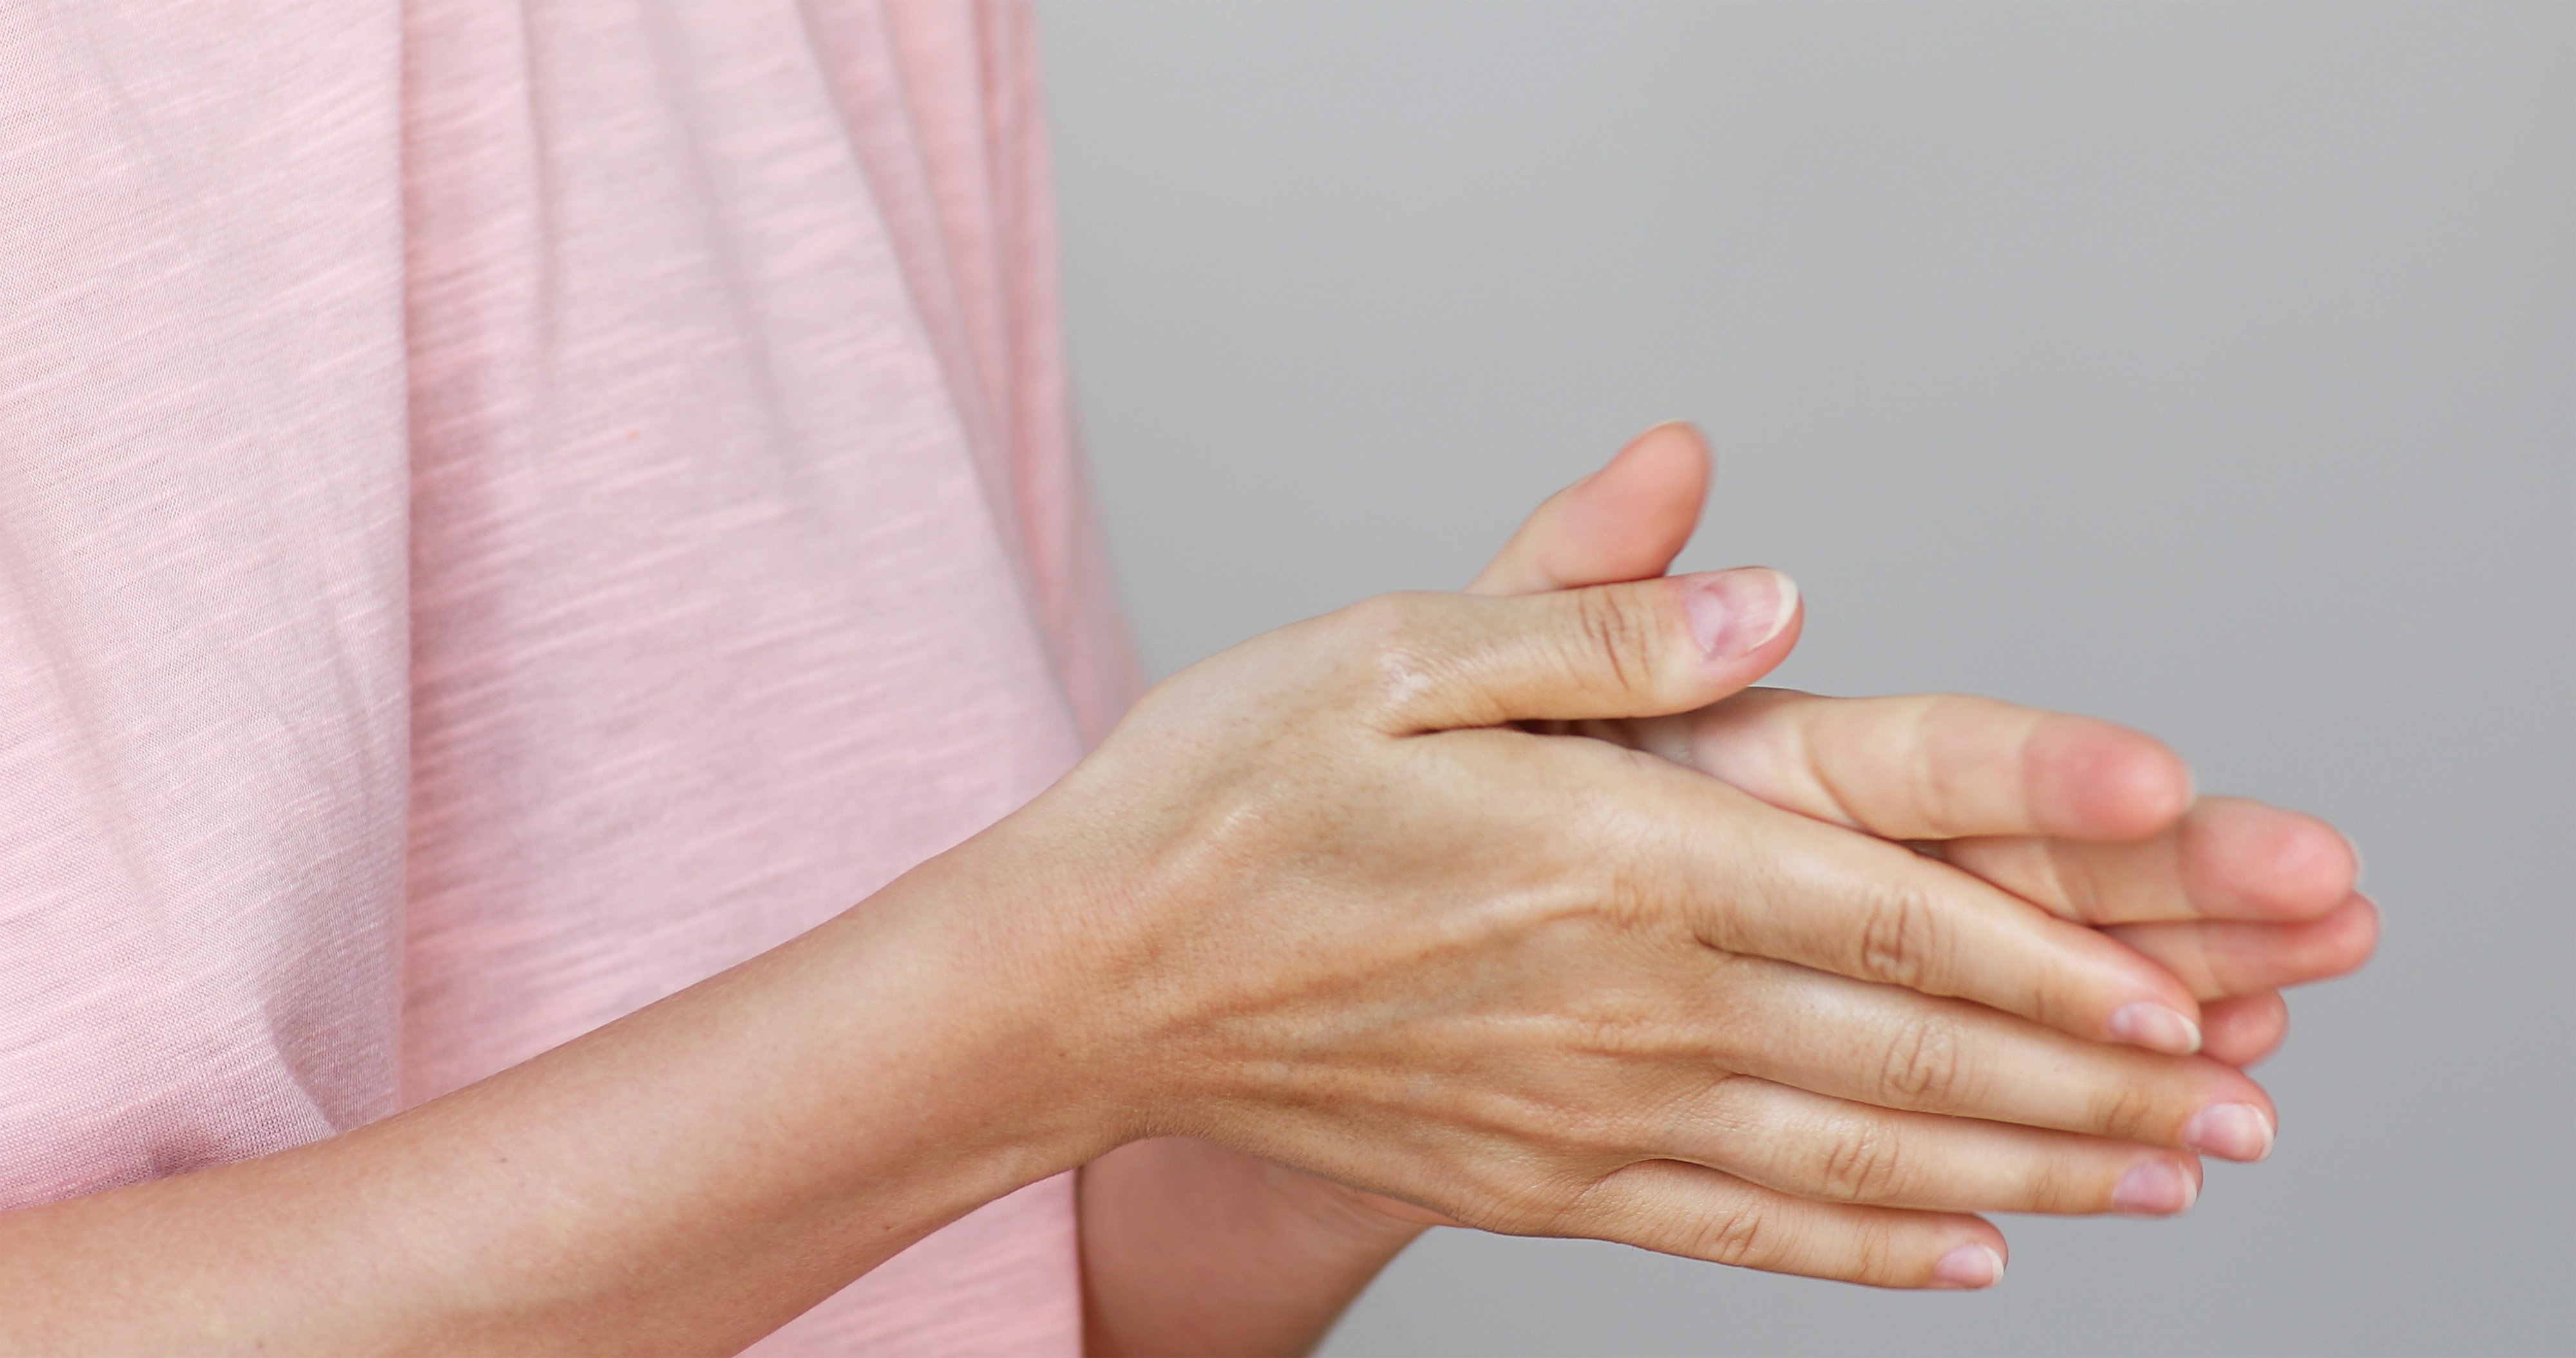 A woman rubbing her hands together | Photo: Shutterstock